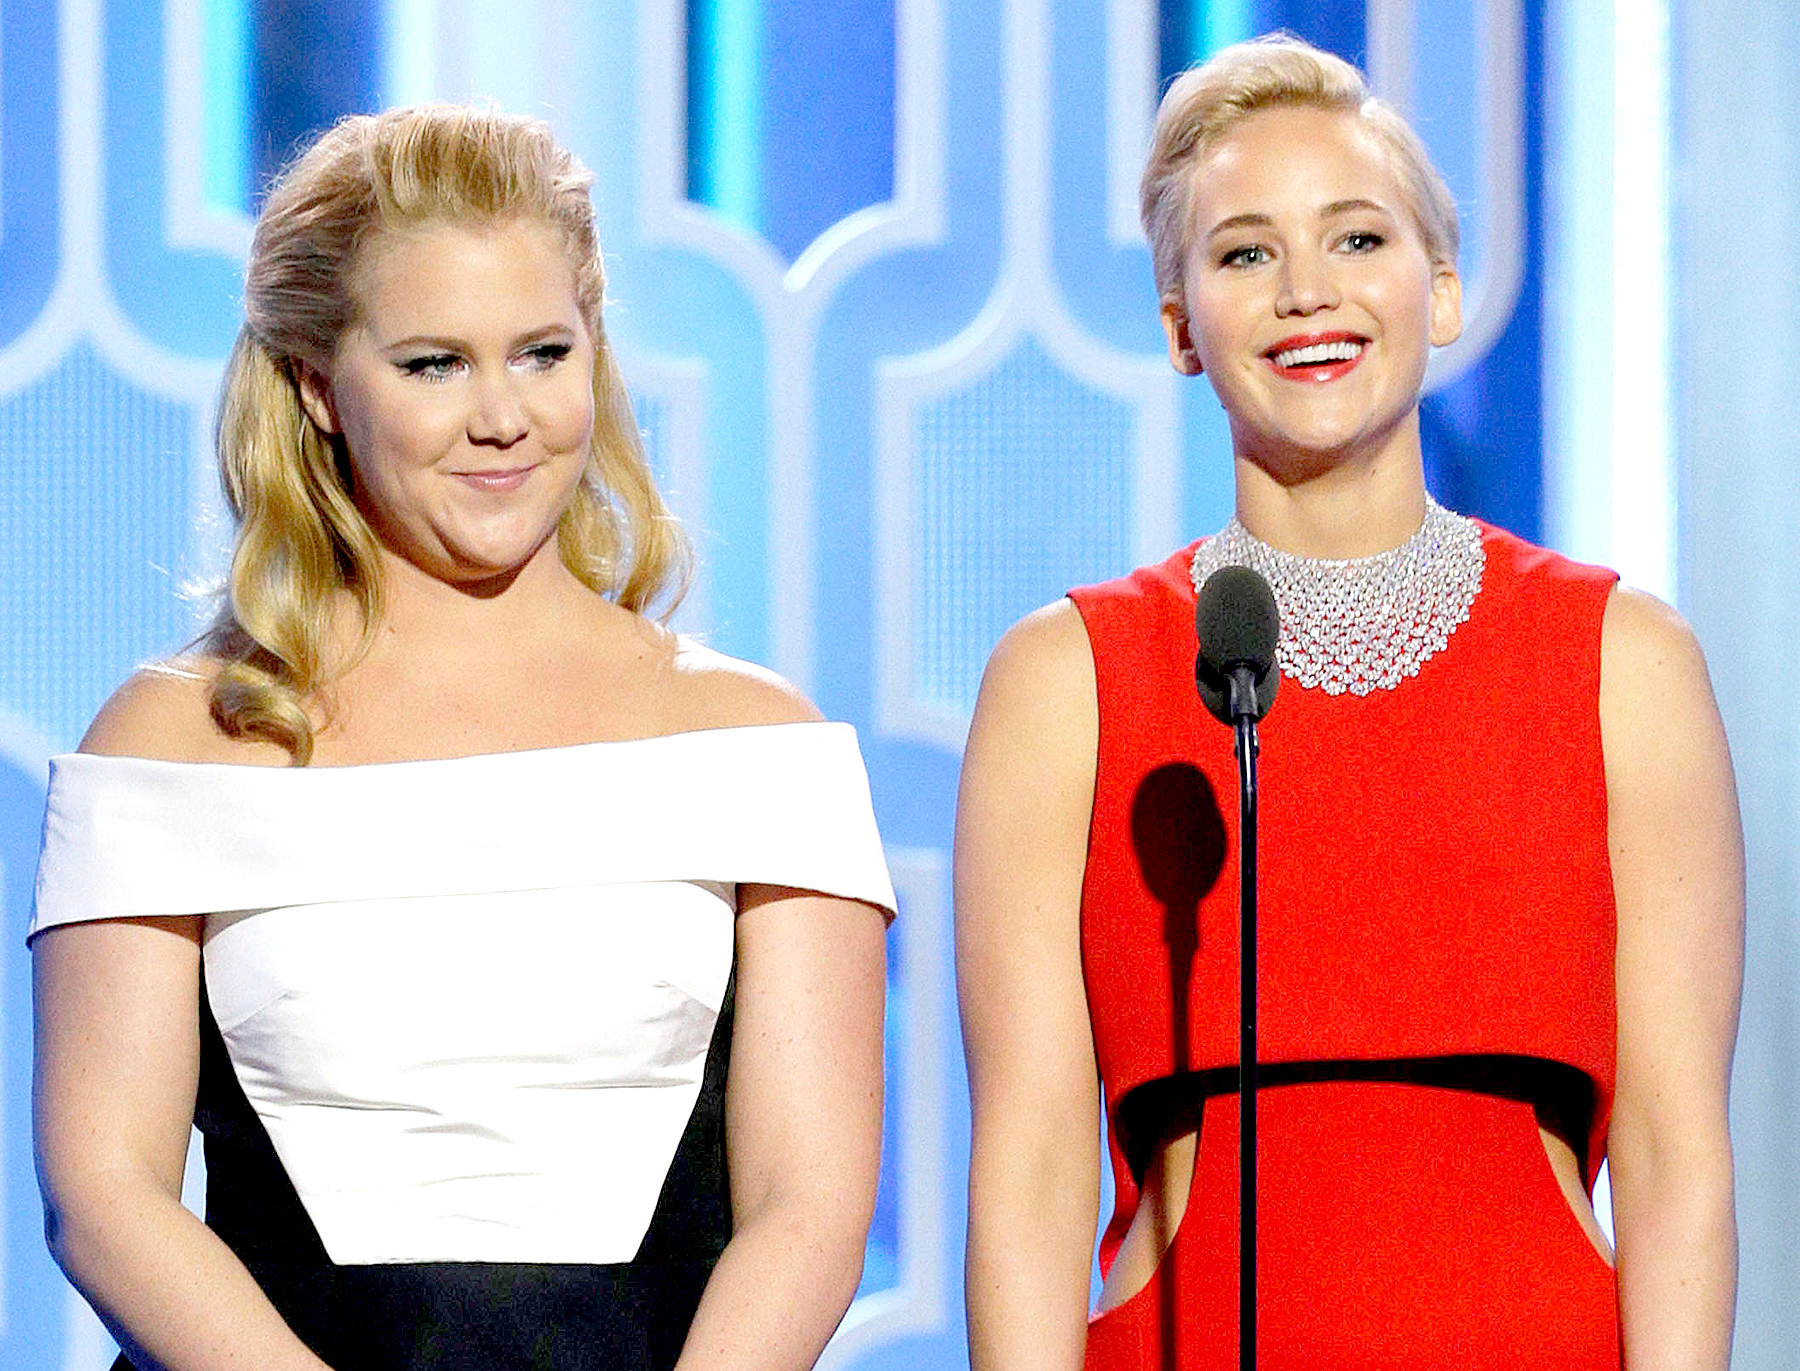 Amy Schumer and Jennifer Lawrence speak onstage during the 73rd Annual Golden Globe Awards at The Beverly Hilton Hotel on January 10, 2016 in Beverly Hills, California.